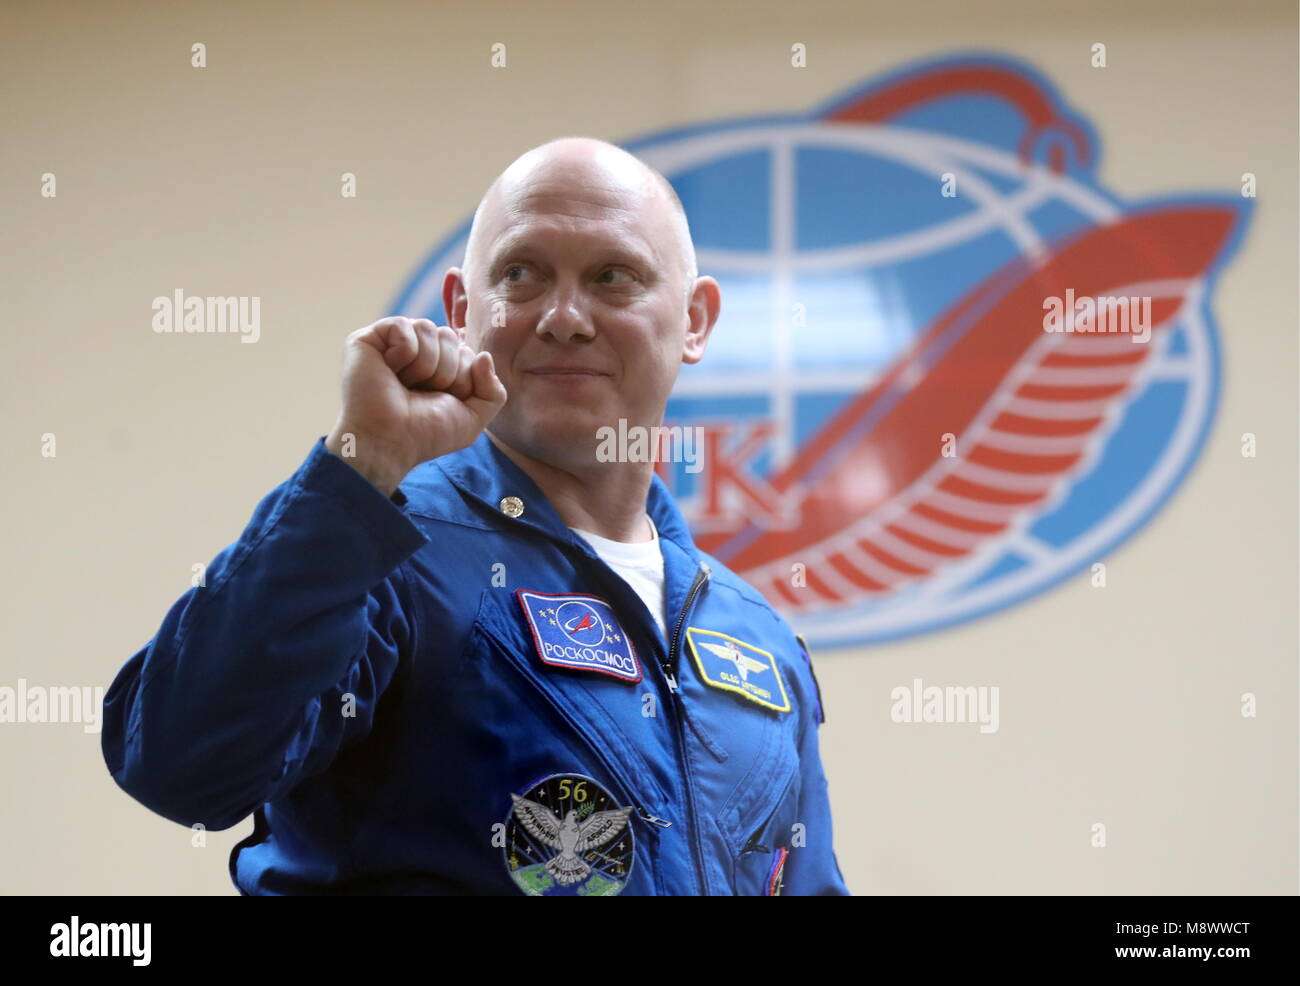 Baikonur, Kazakhstan. 20th Mar, 2018. BAIKONUR, KAZAKHSTAN - MARCH 20, 2018: Roscosmos cosmonaut Oleg Artemyev shows Stock Photo